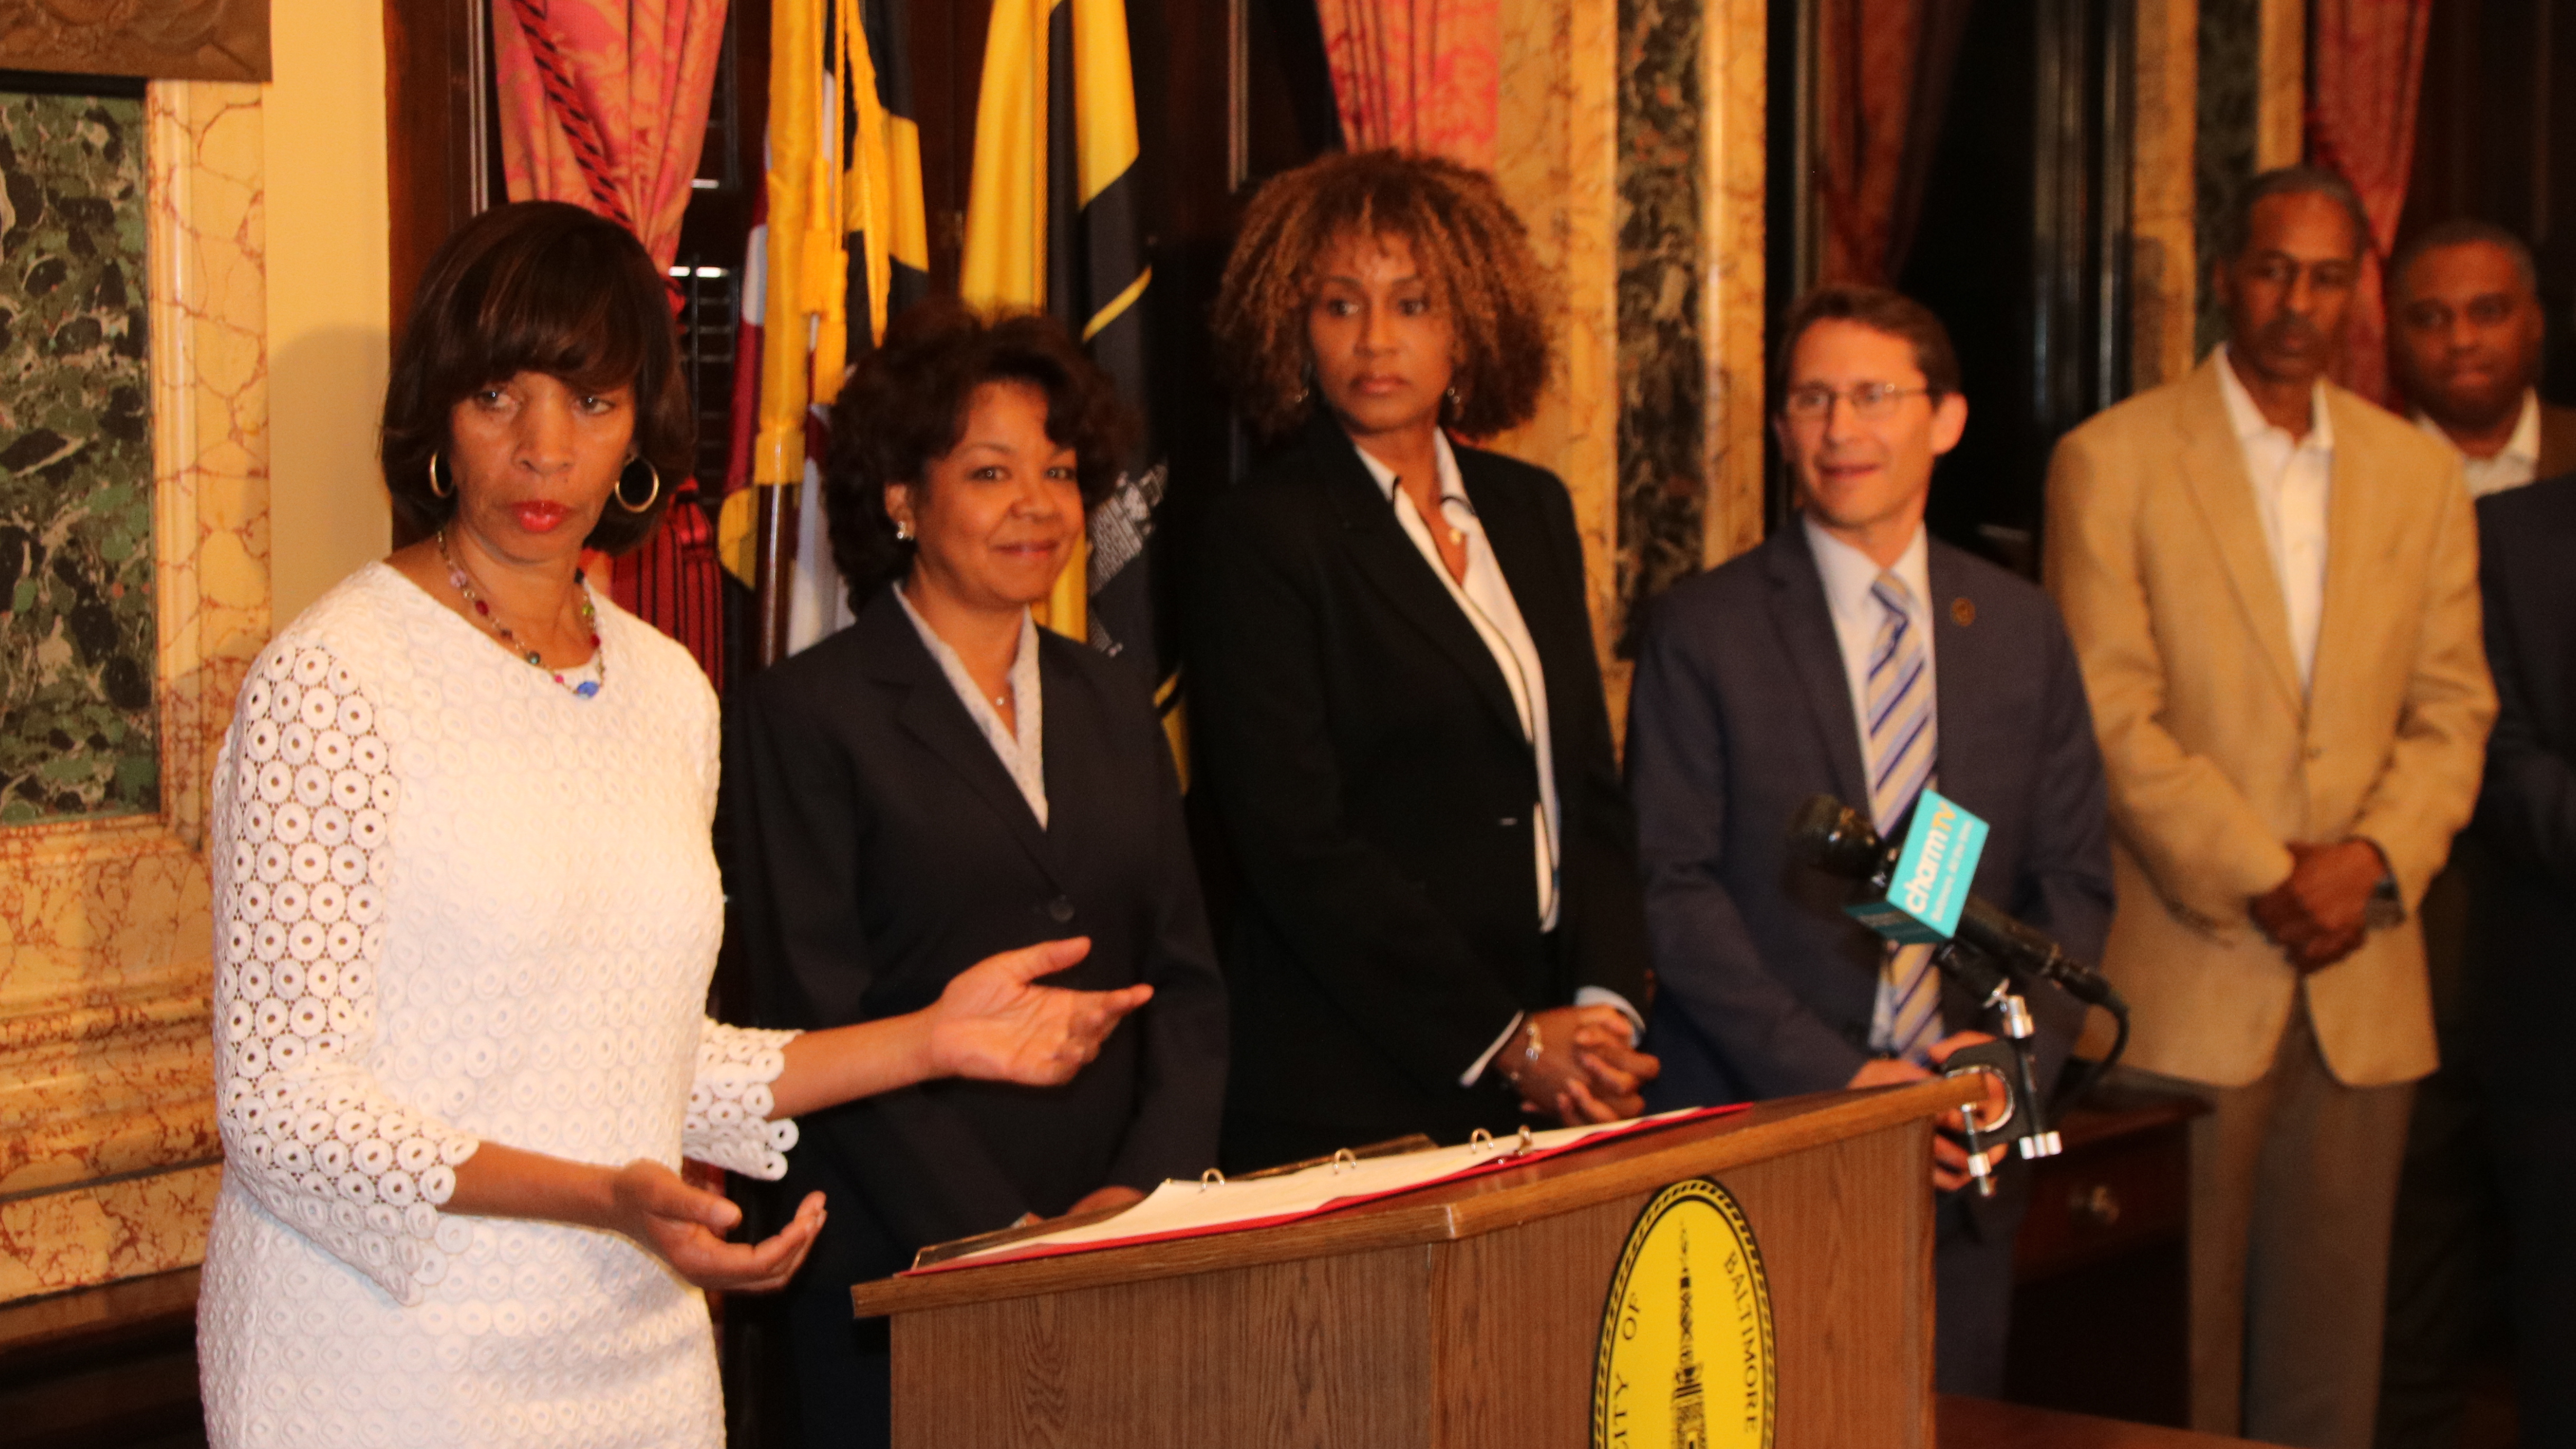 Mayor Catherine Pugh (in white) announces new cabinet picks (l-r) Michelle Pourciau, Janet Abrahams and Michael Braverman. (Louis Krauss)